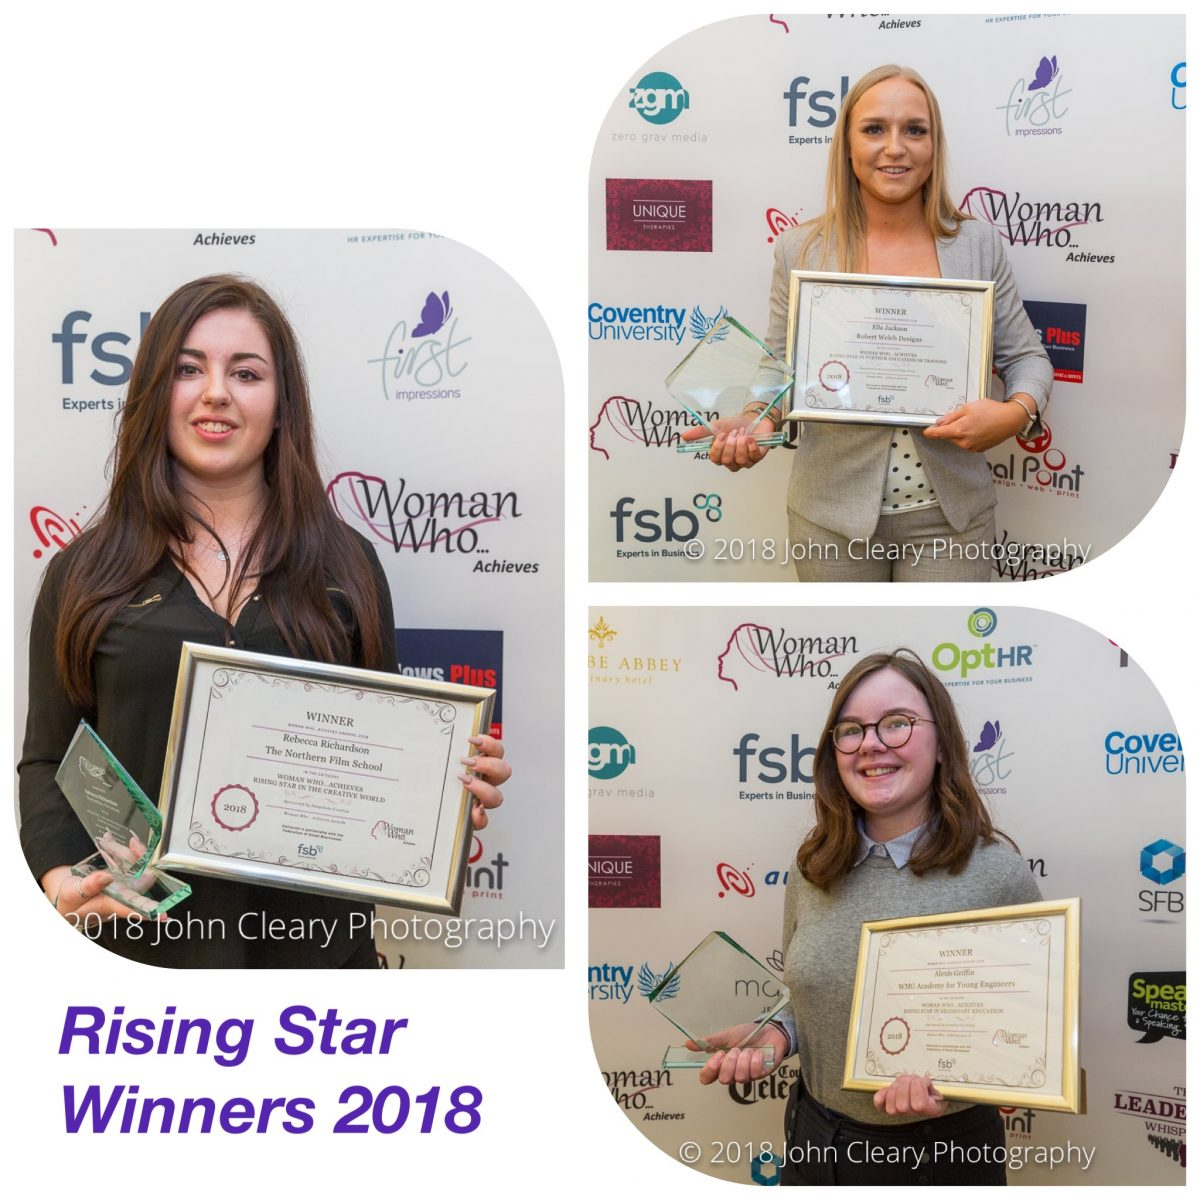 Congratulations to the Woman Who Achieves Rising Star Finalists 2019 Sponsored by Coventry University and Imaginate Creative